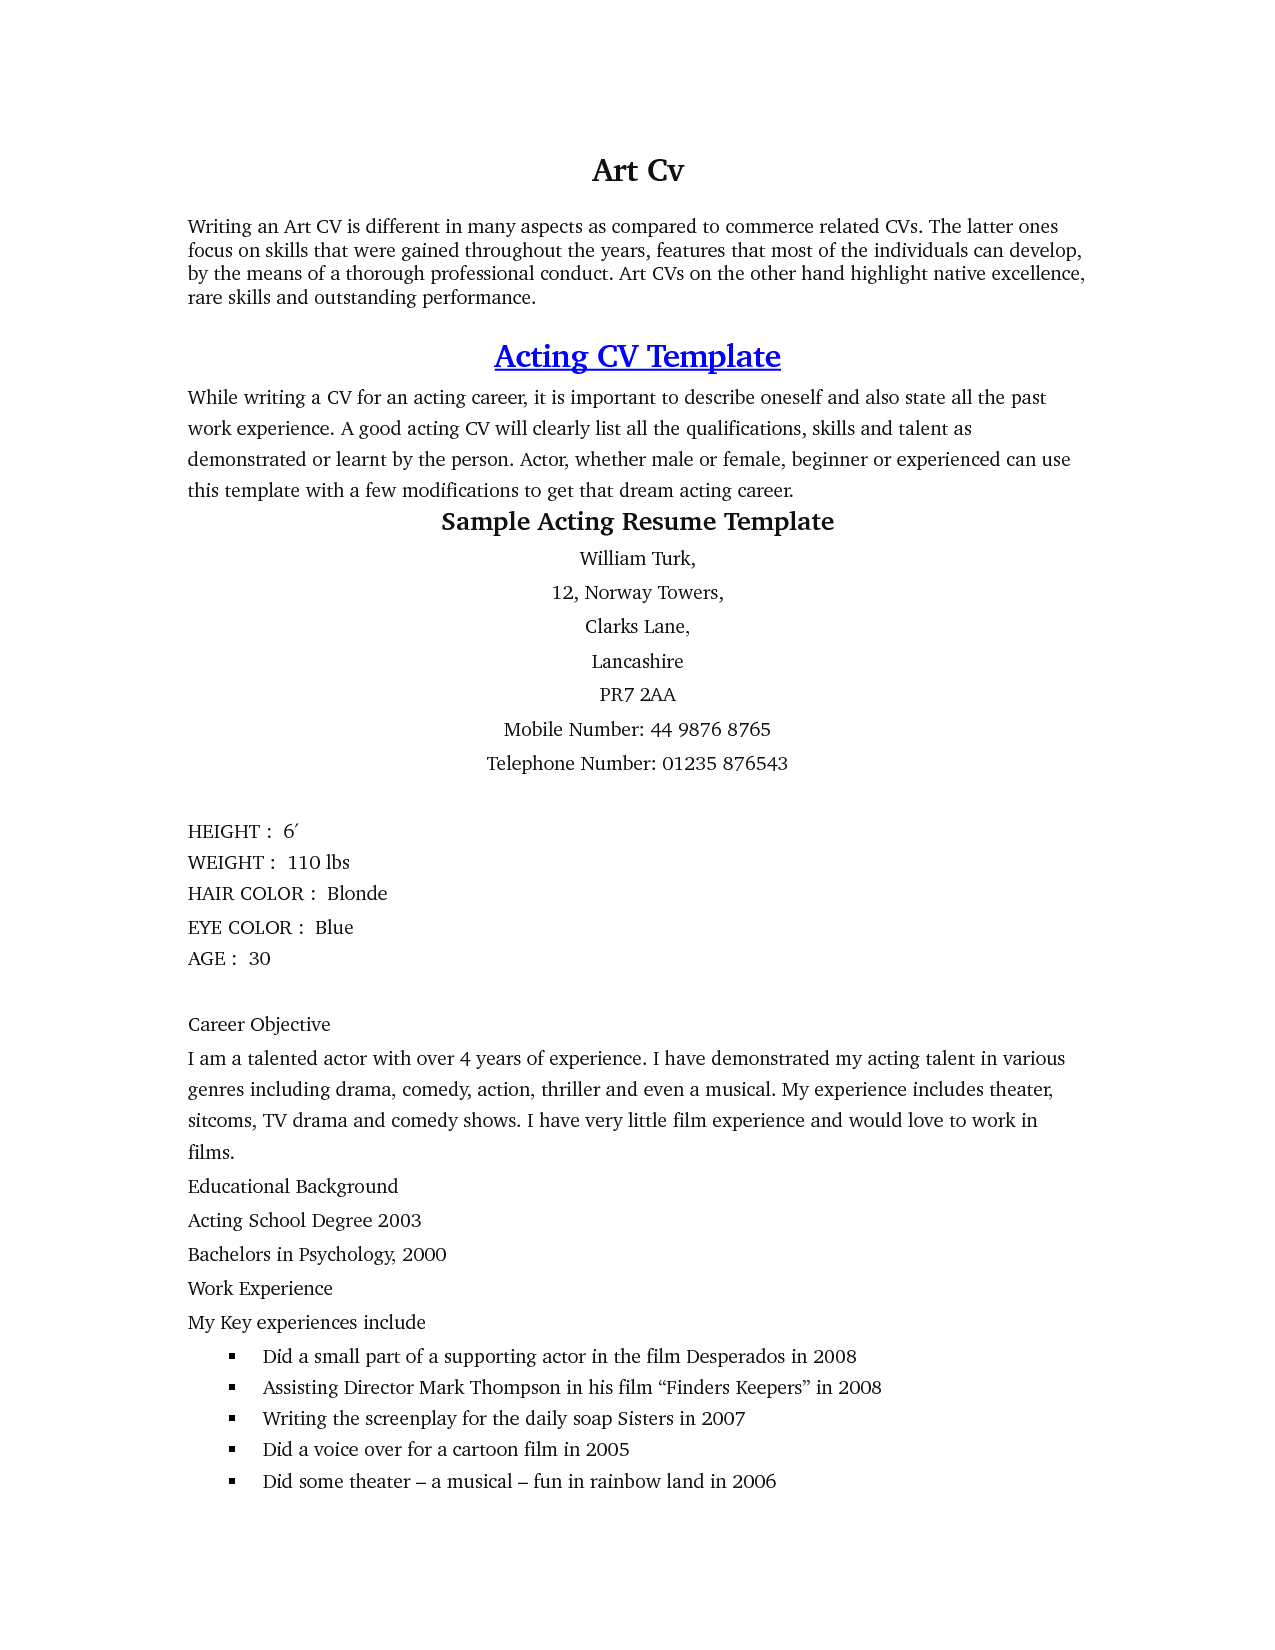 resume samples for beginners acting resume sample resume builder for high students open - Sample Acting Resume Template Actor Resume Sample